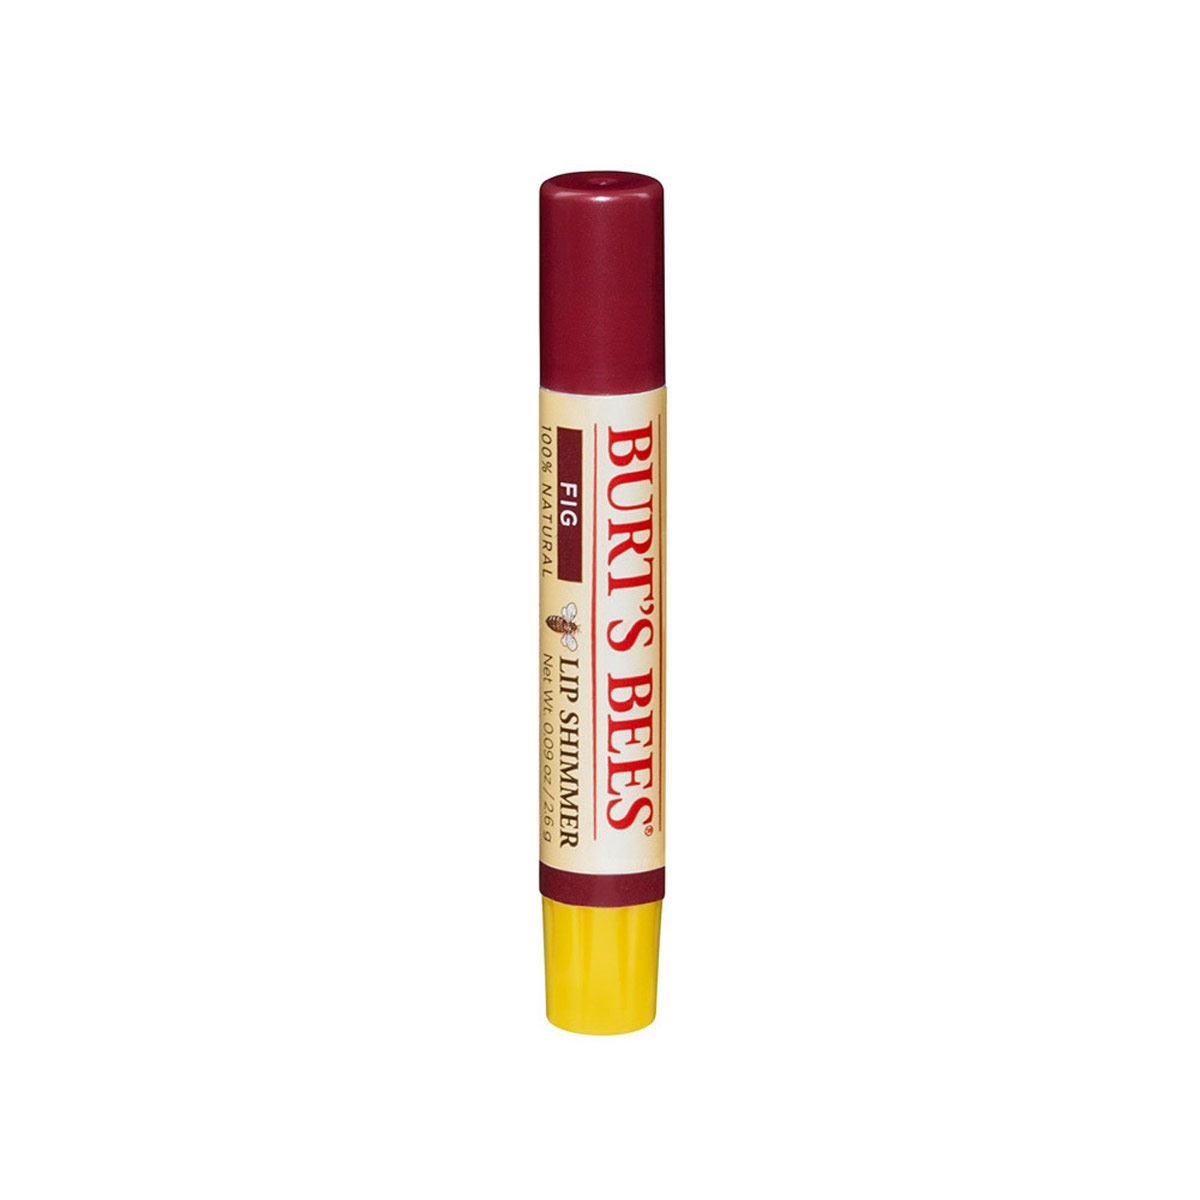 Labial Lip Shimmer Burt's Bees Fig